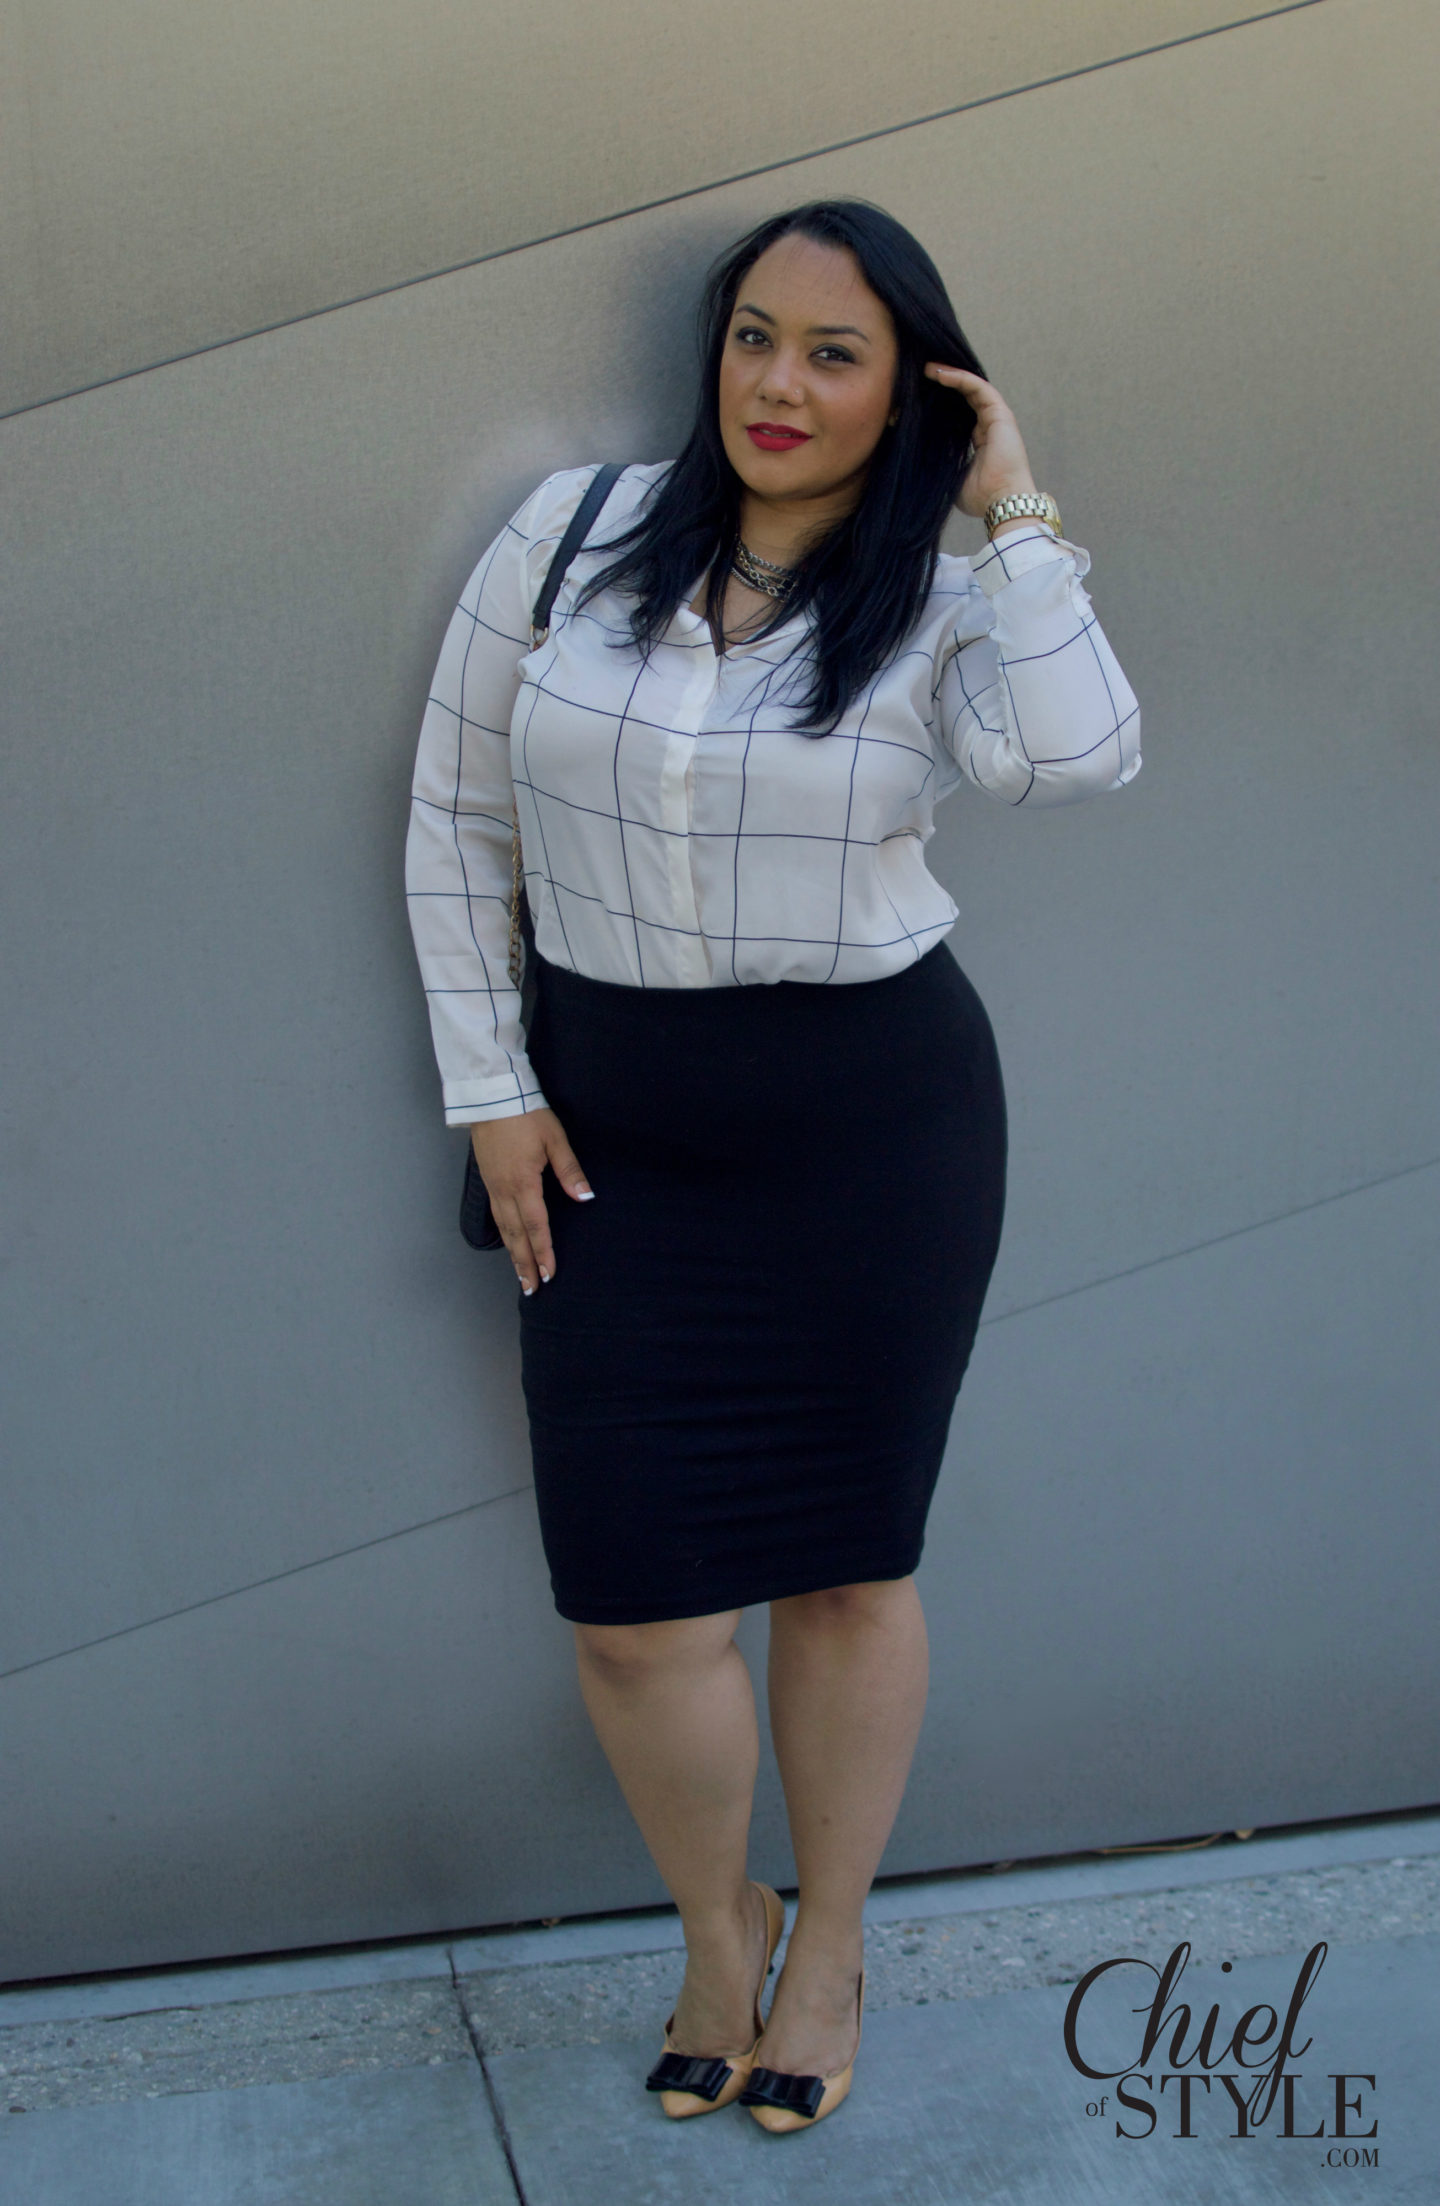 Amy Stretten is the Chief of Style. She is a plus size style blogger from Los Angeles, California.